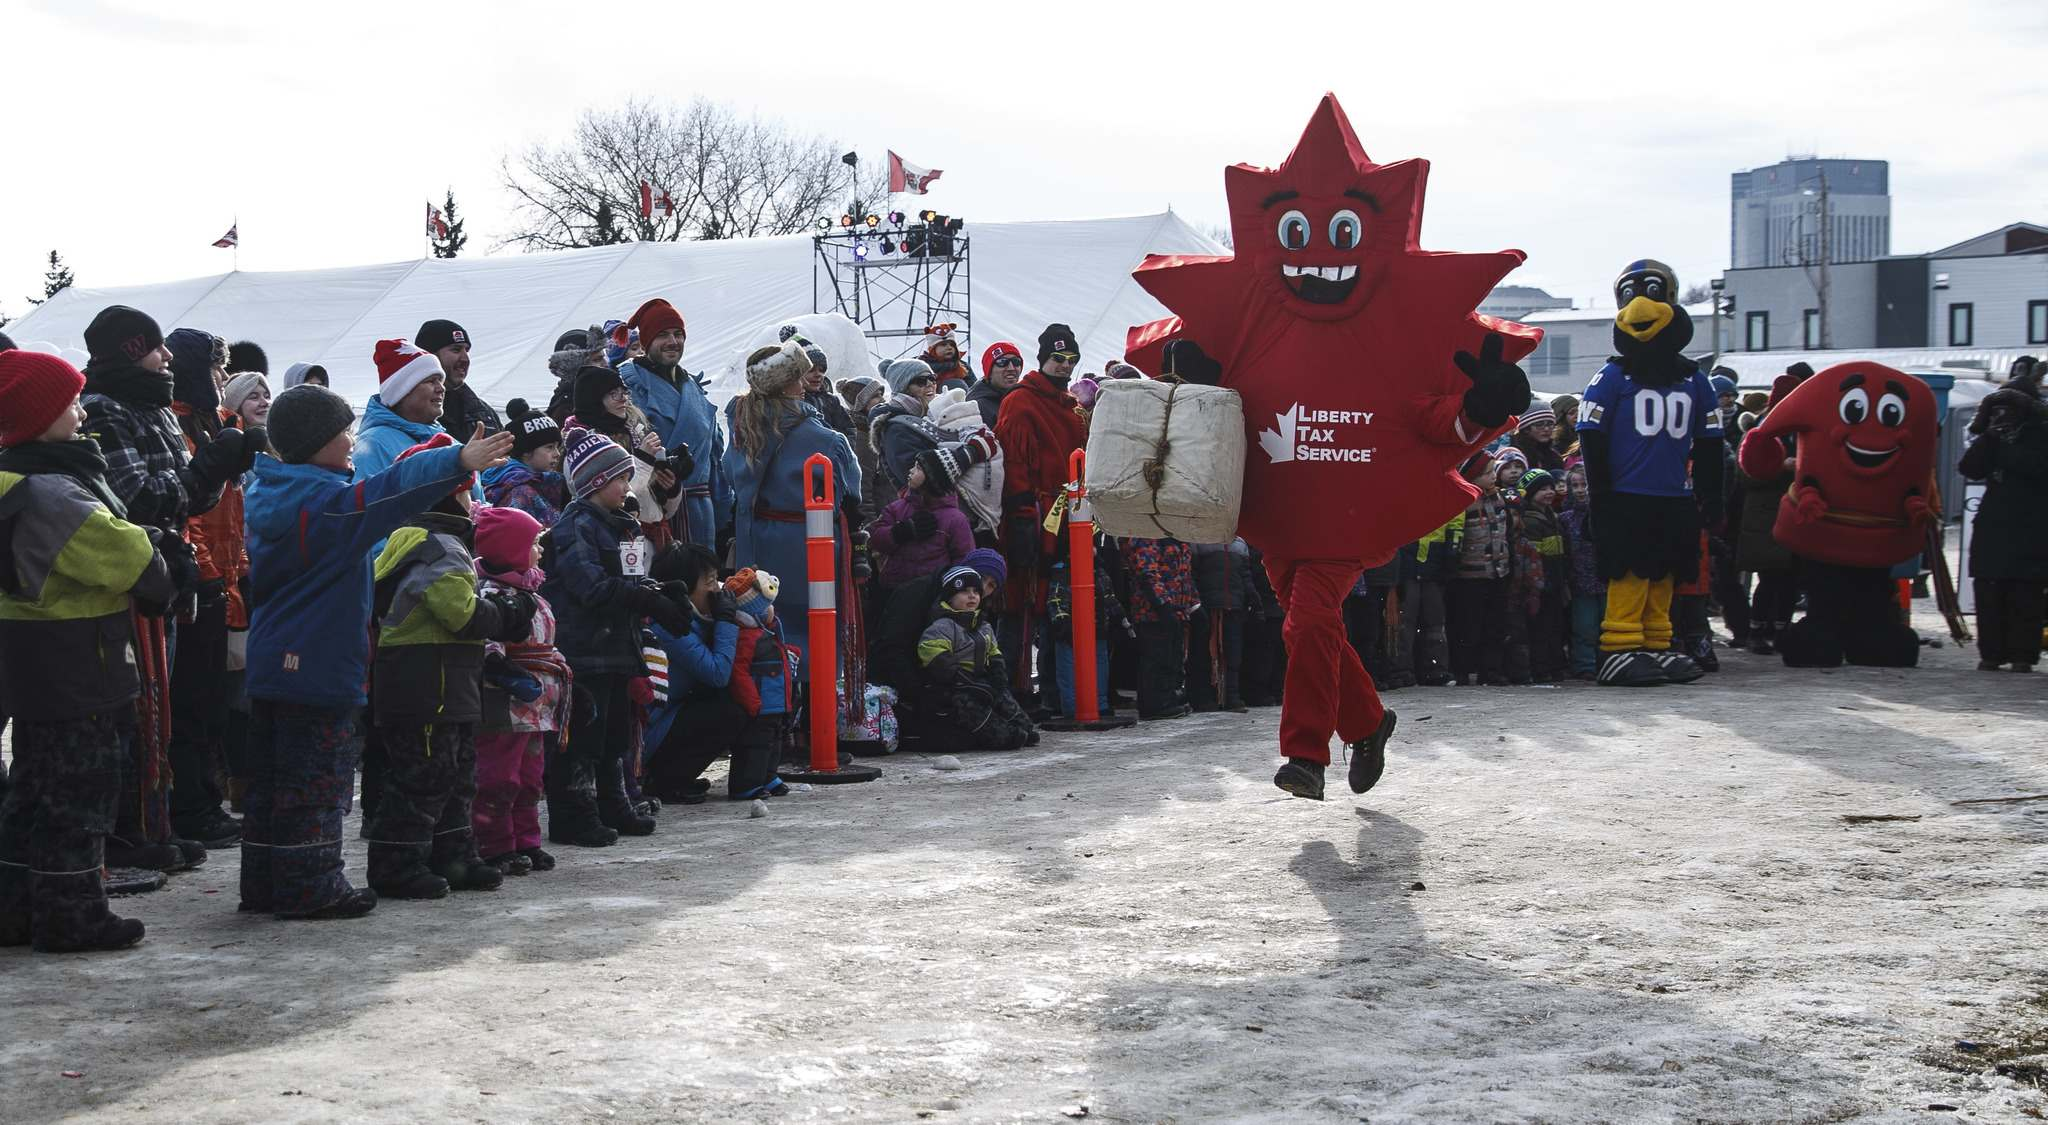 MIKE DEAL / WINNIPEG FREE PRESS</p><p>Local mascots took part in a race for the kids during the Festival du Voyageur in Fort Gibraltar. Many people complained about long lines at the festival Saturday night.</p></p>